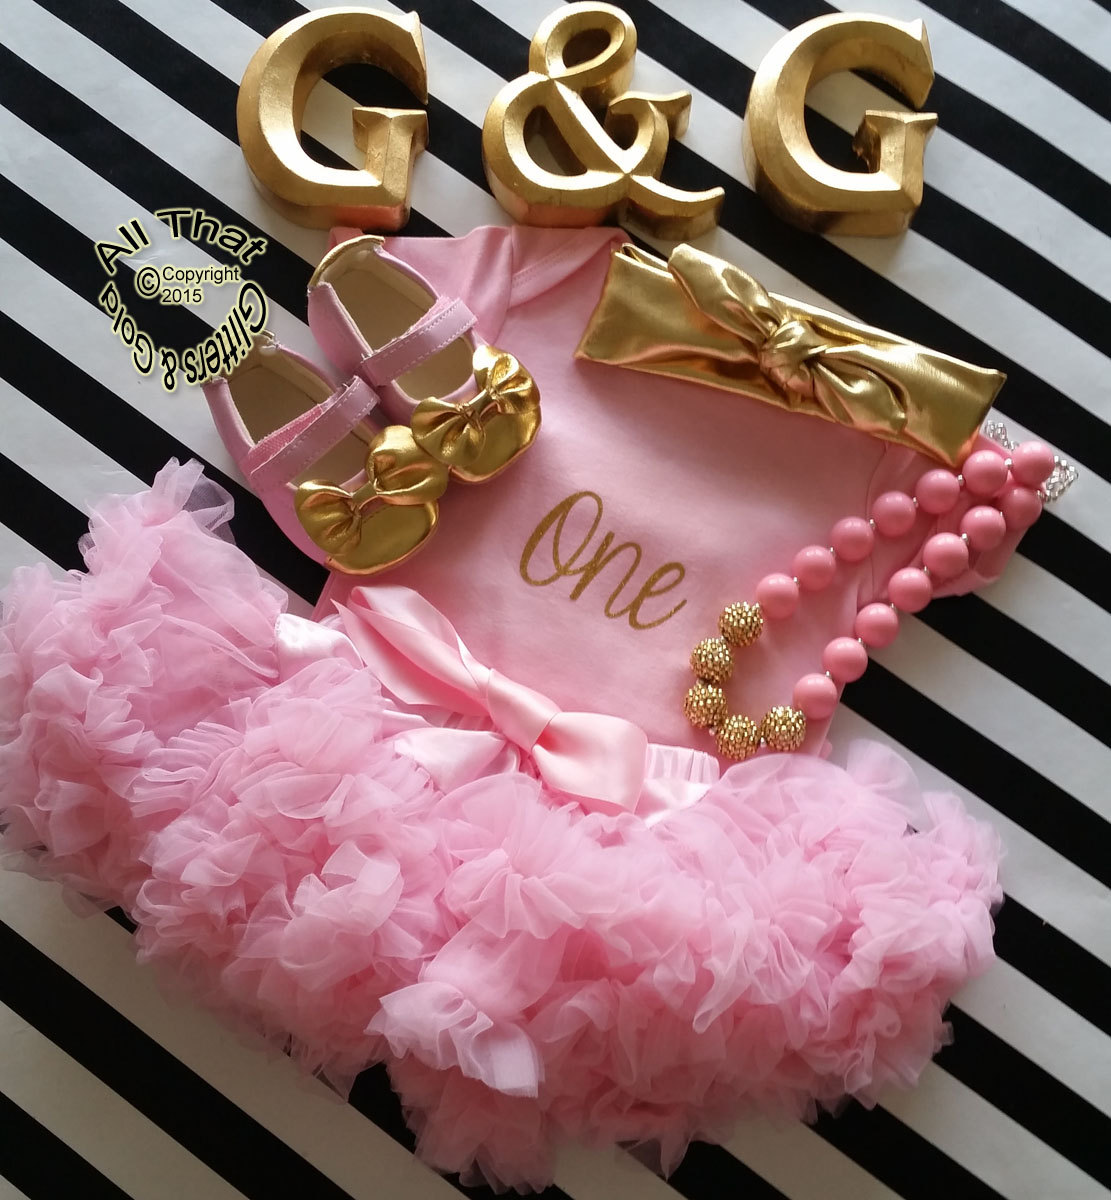 d0d7e270d883c Pink and Gold One Year Old Birthday Tutu Skirt Outfit - Unicorn Horn ...